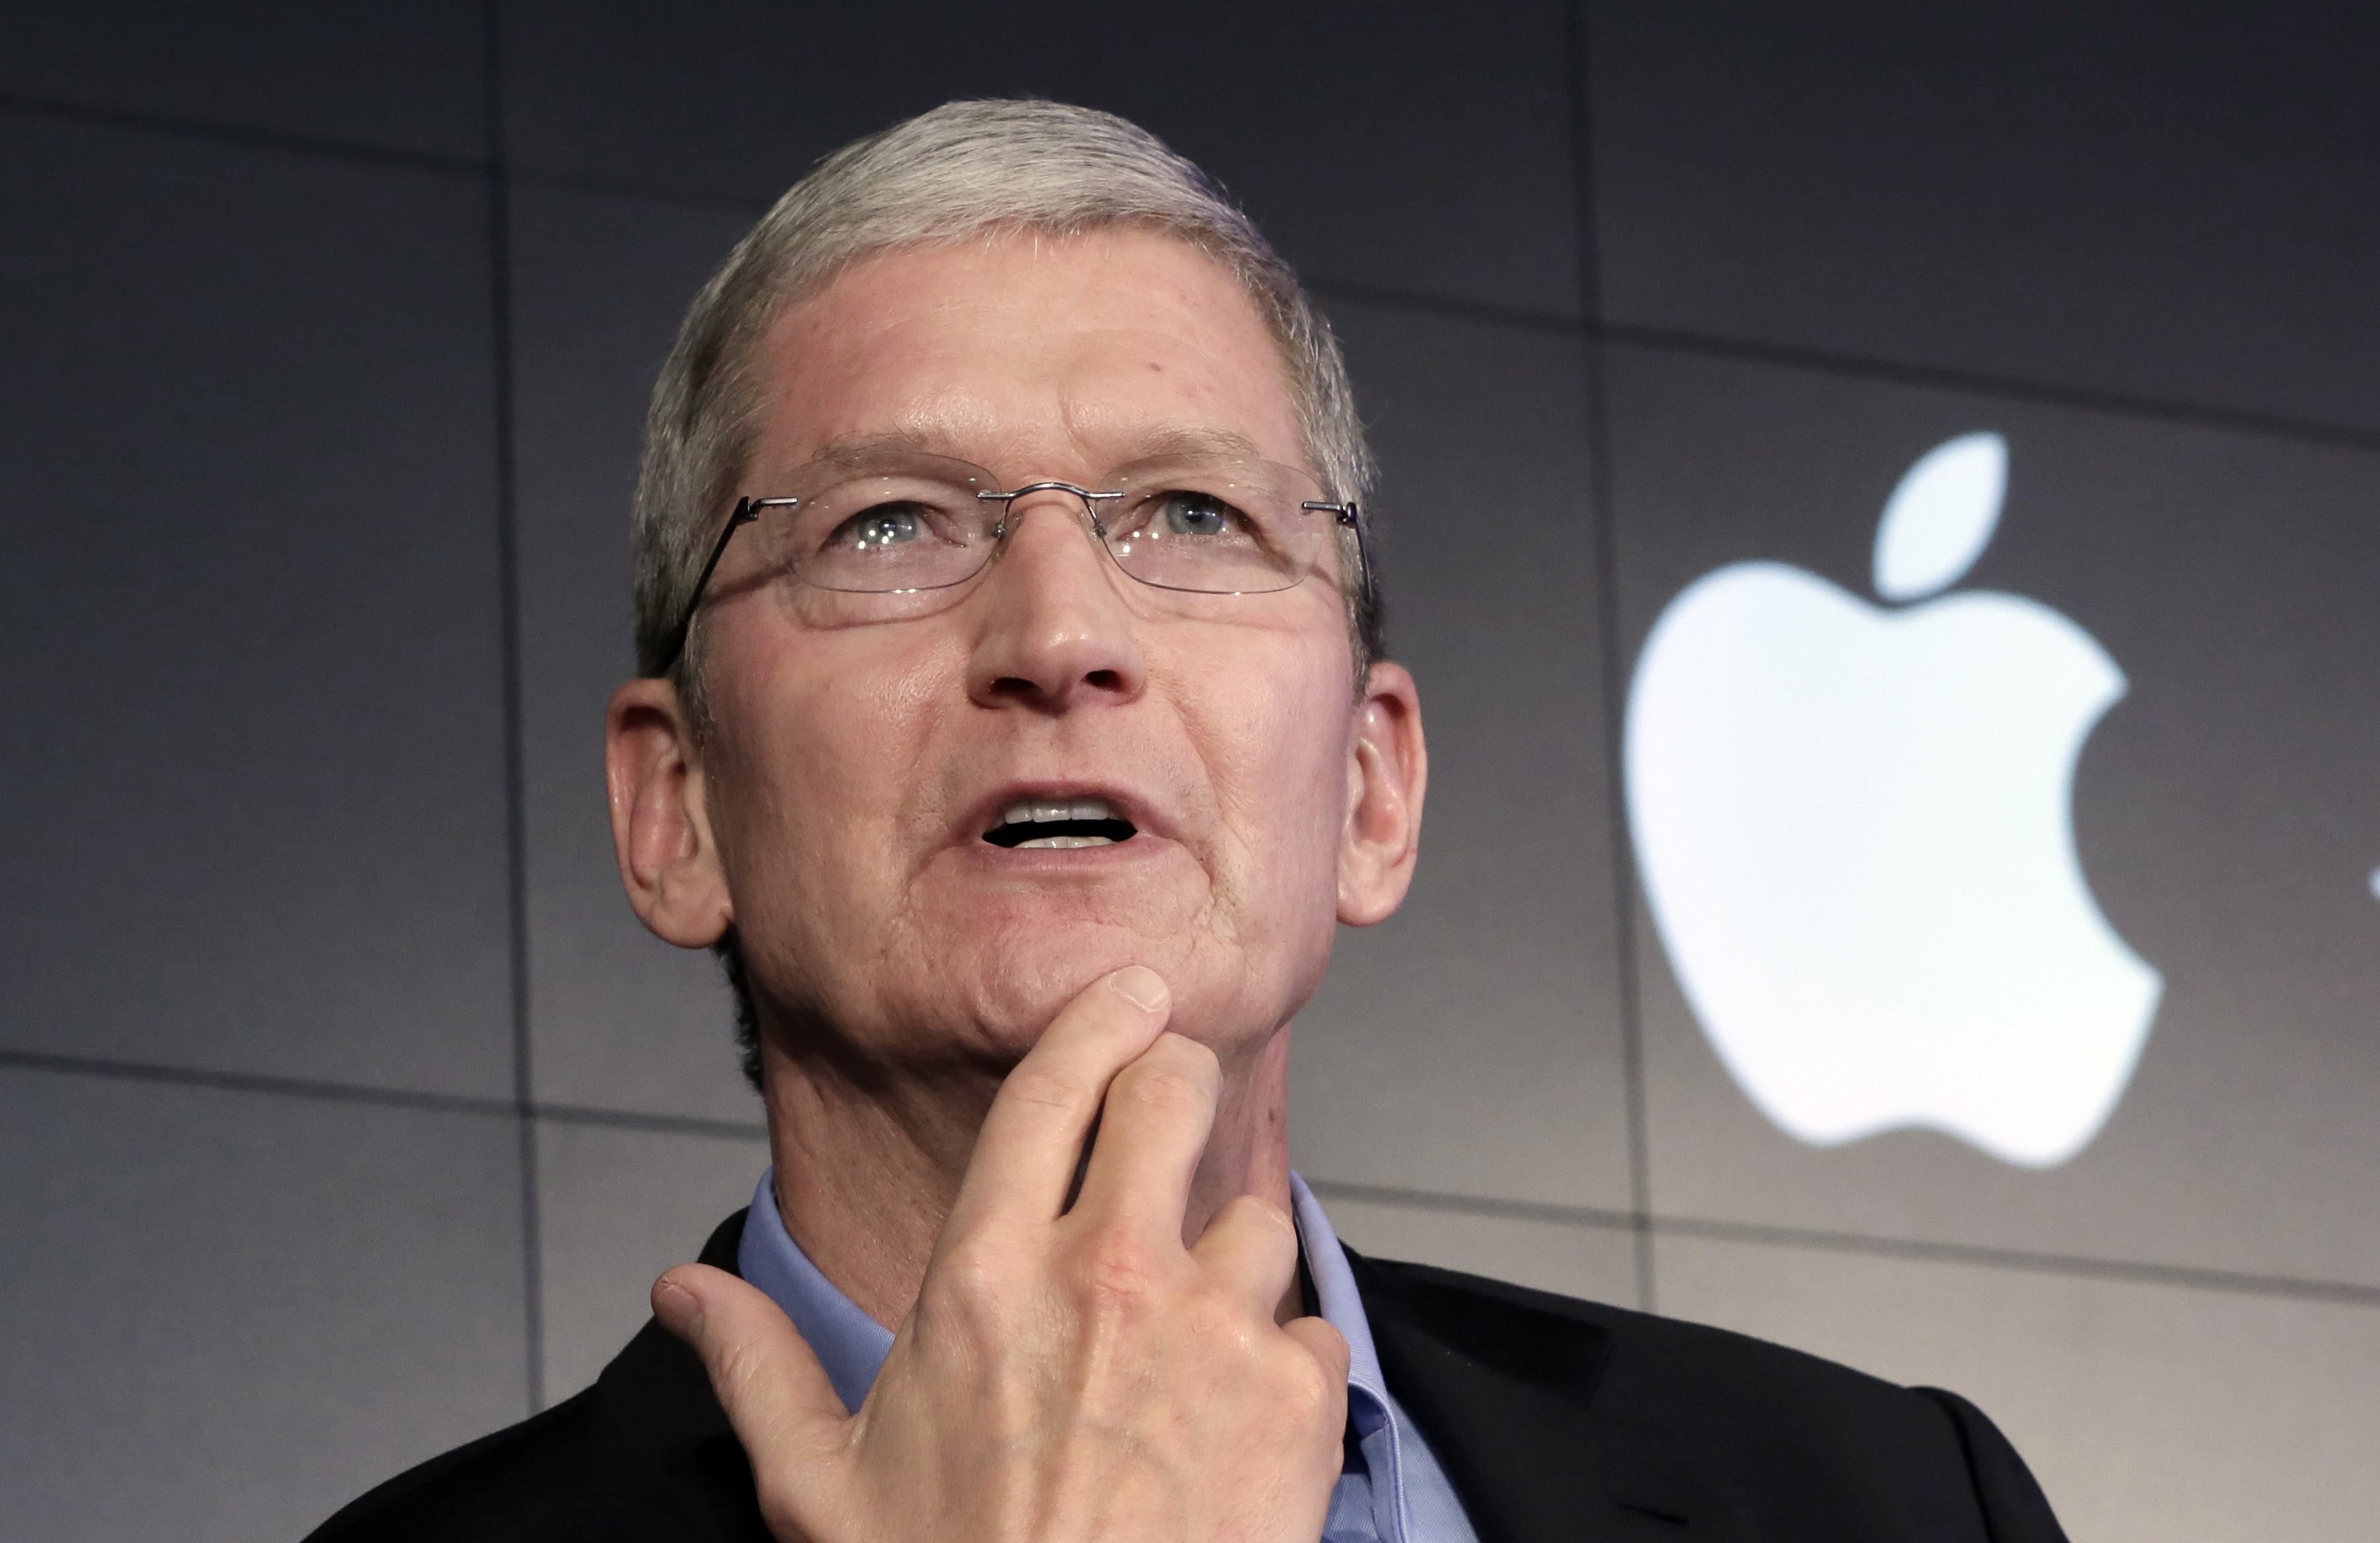 After FBI's iPhone Hacking, Apple Now Needs Their Help Figuring out Flaw